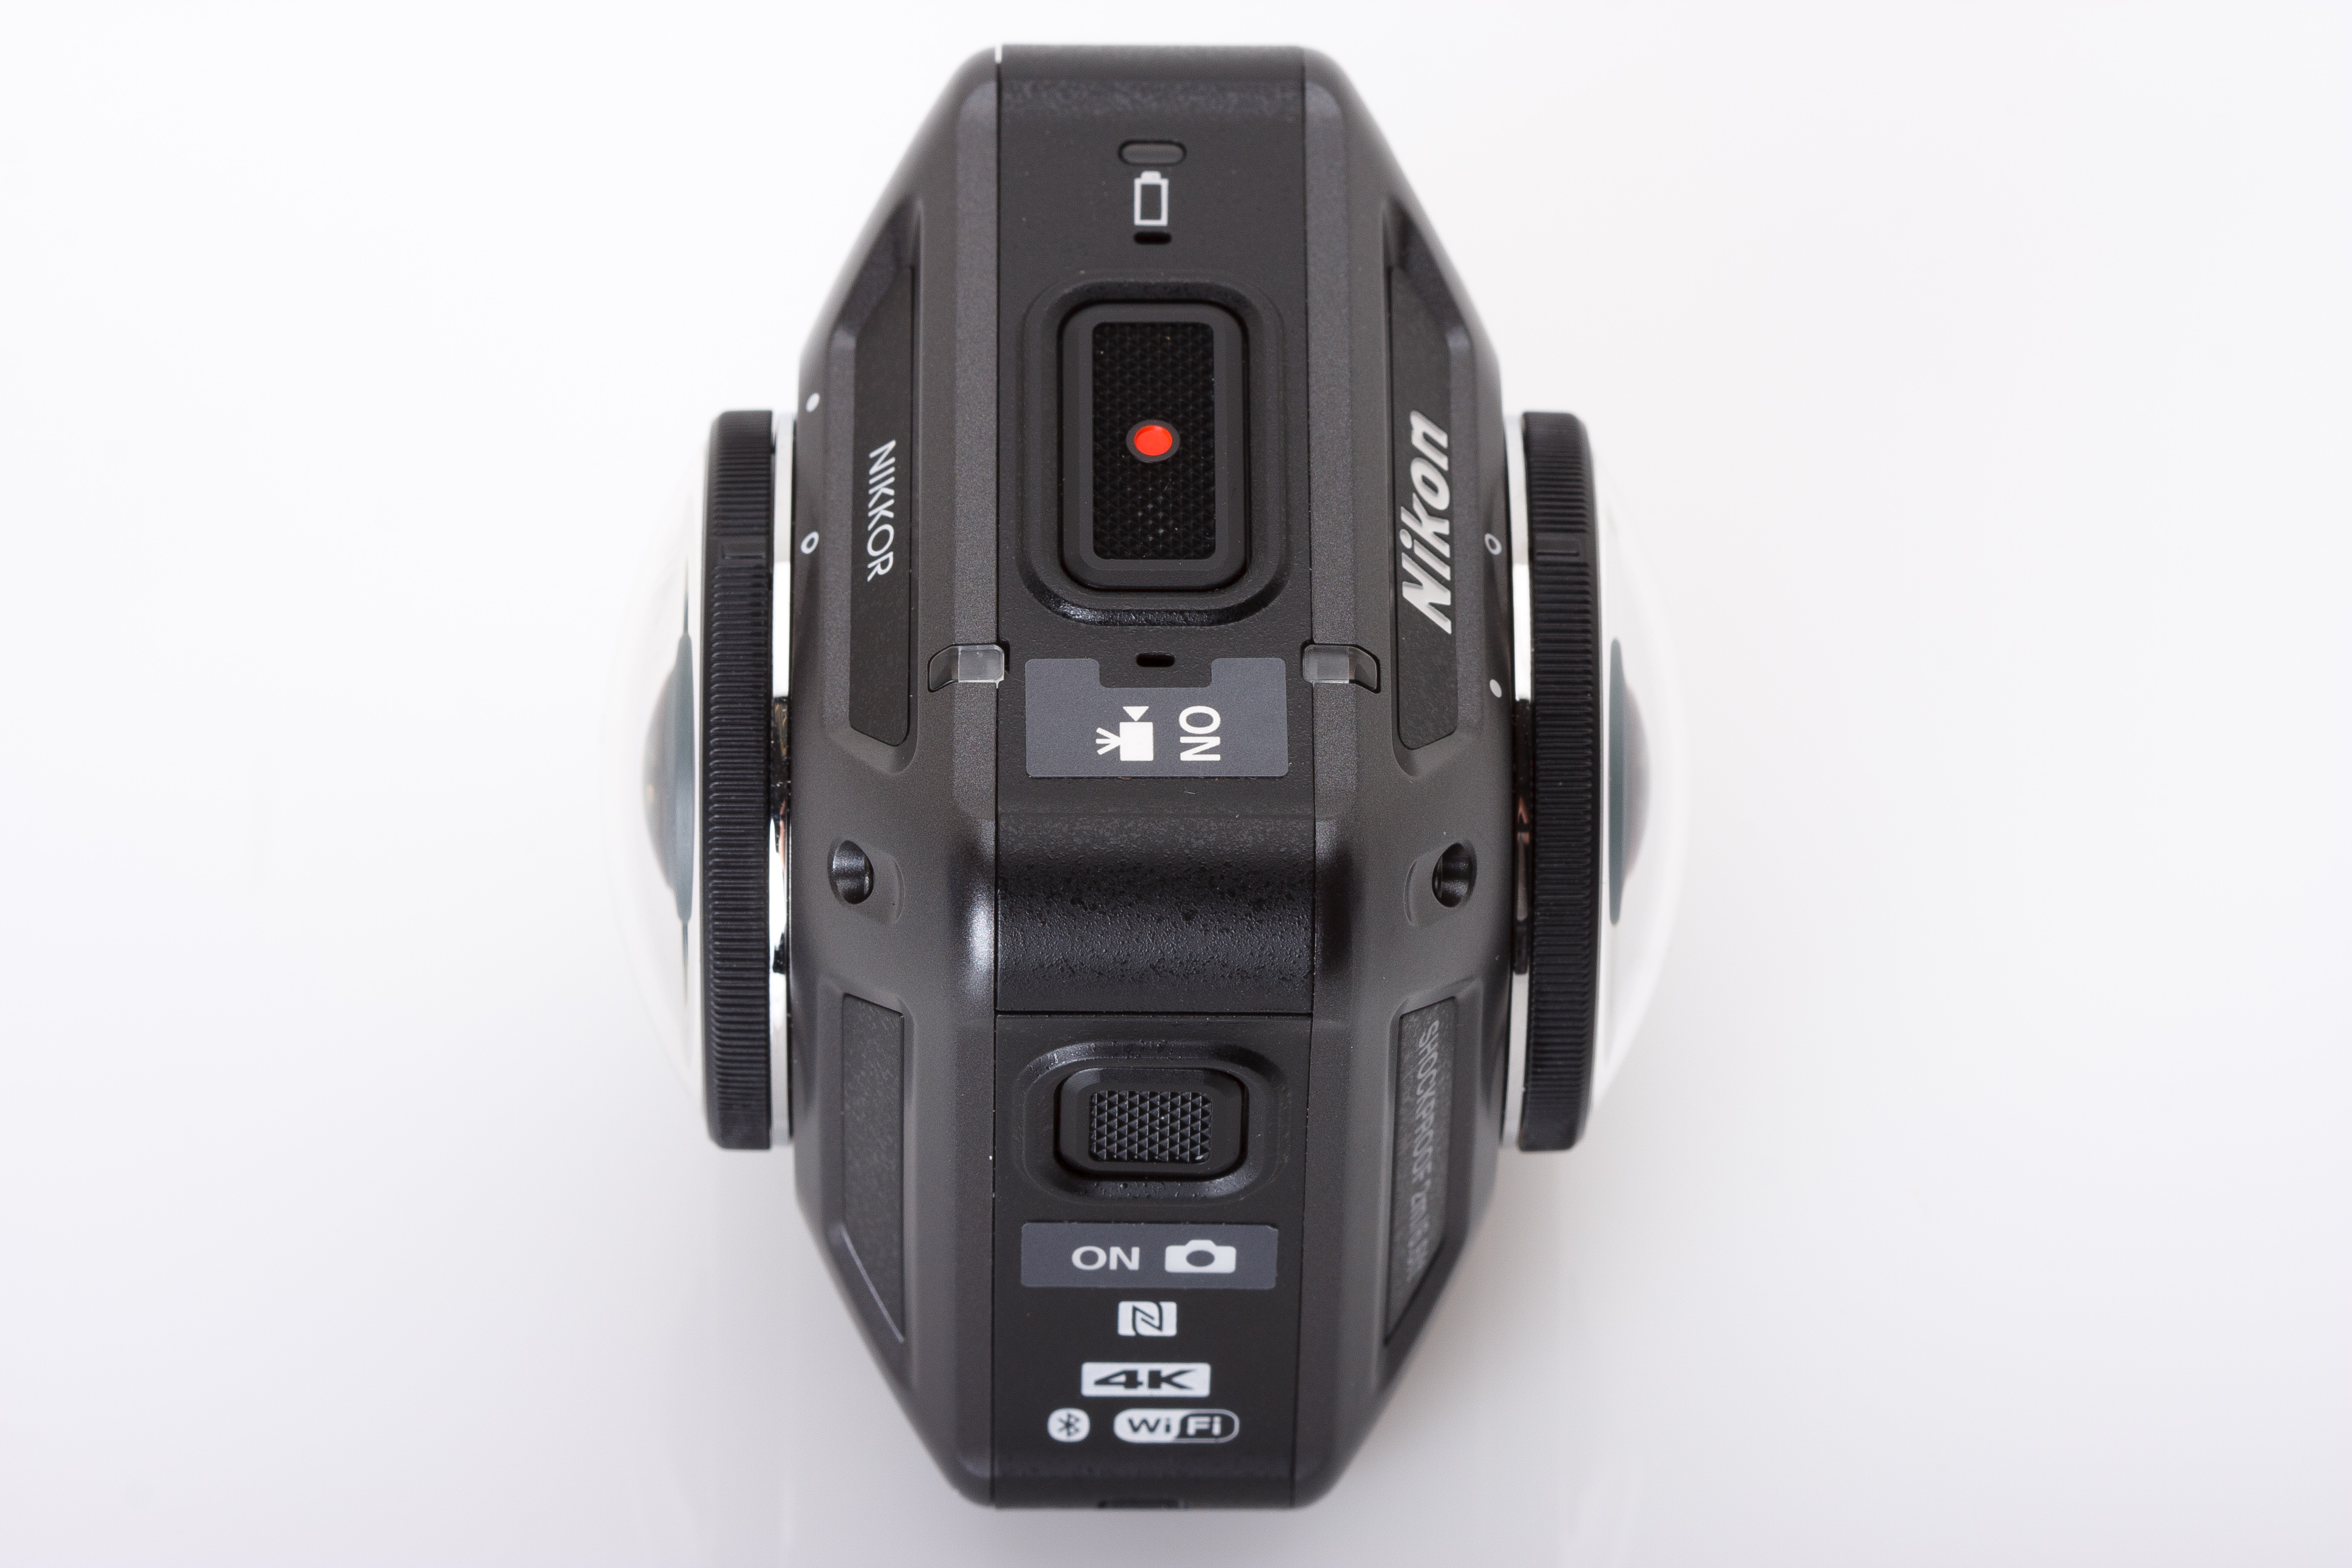 Sphere Of Frustration Nikon Keymission 360 Review Digital Sample And Hold Additionally Pressing A Button Starts Capture Even When The Camera Is Off An Unusual Feature For Most Cameras That In This Case Often Helpful